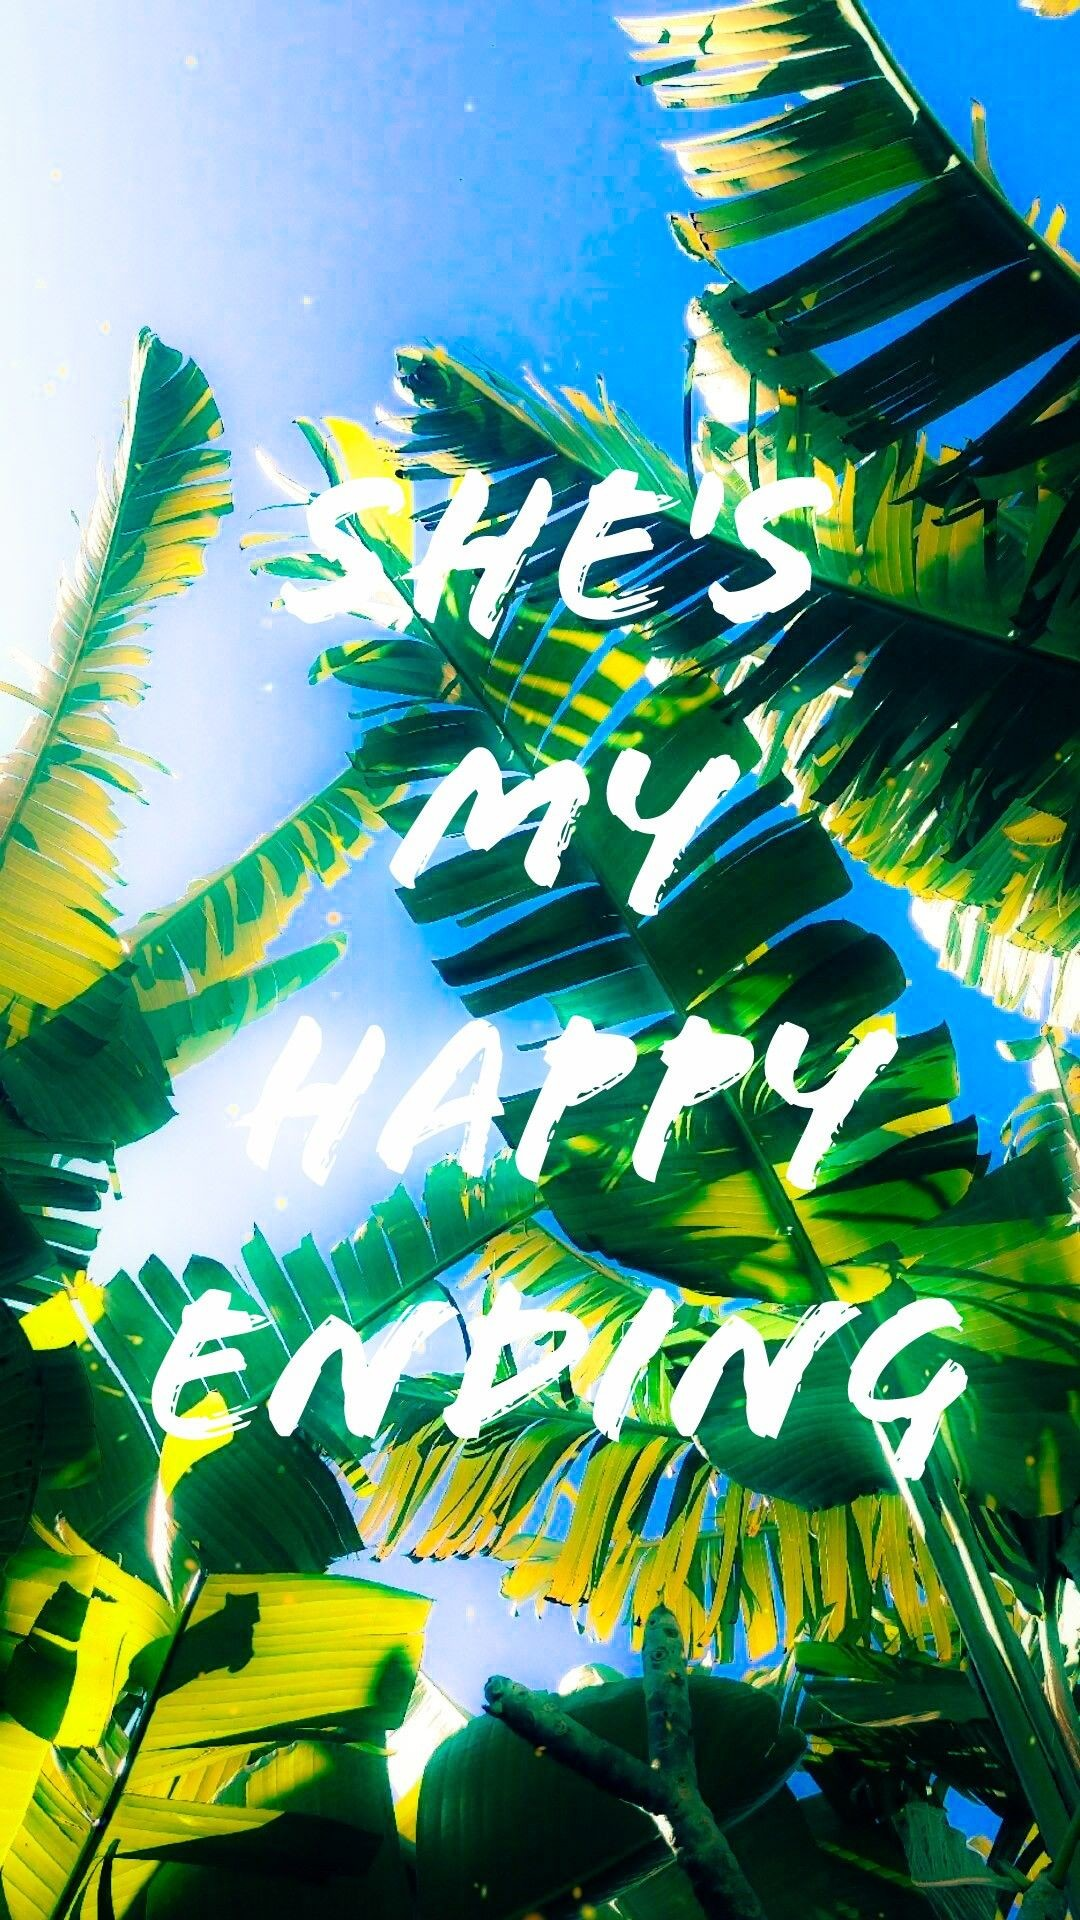 Res: 1080x1920, #LGBTQ #bisexuality #lesbian #gay #girlxboy #love #quotes #paradise  #palmleaves #palms #teenage #wallpapers